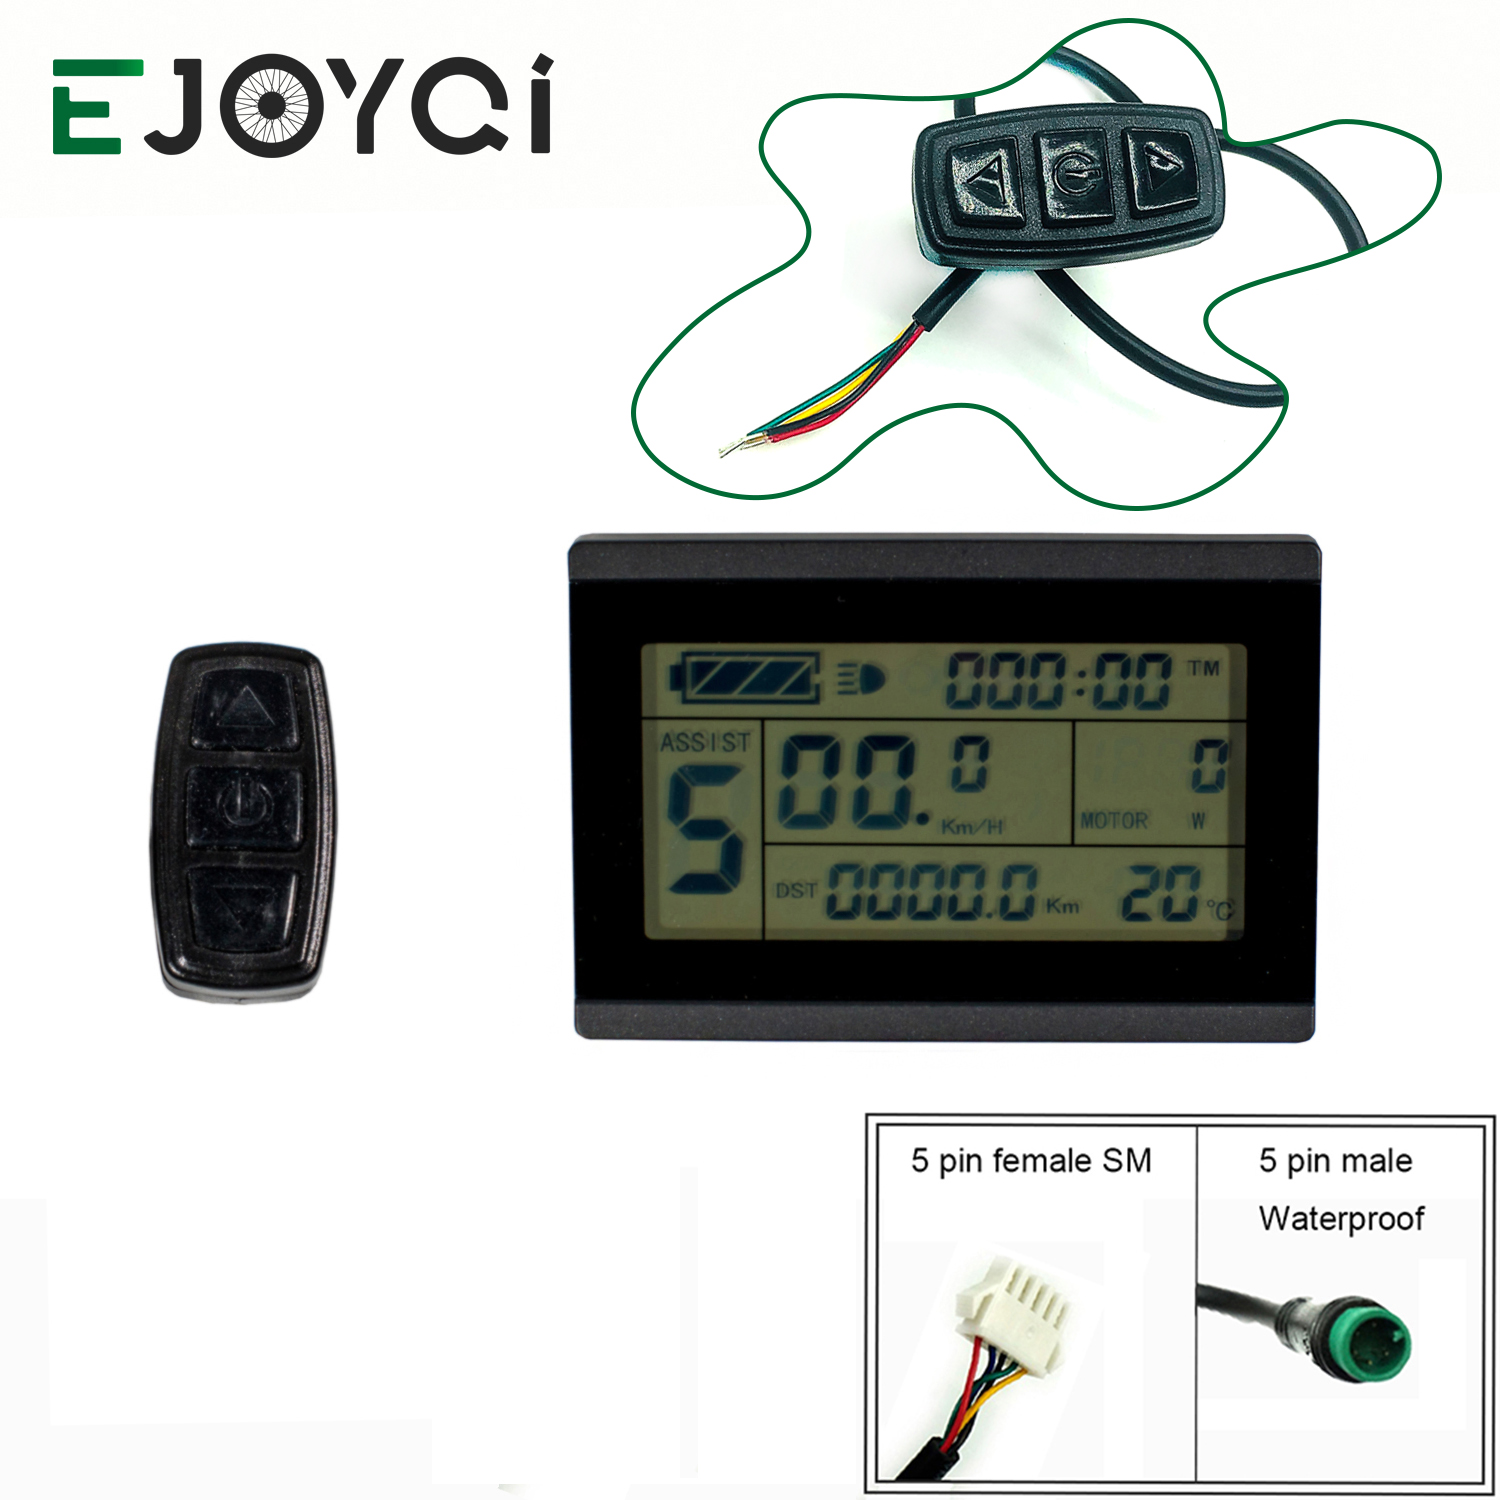 EJOYQI KT LCD3 Display 24V 36V 48V 72V Ebike Computer Panel Operator Ebike LCD Display For Electric Bicycle Conversion Kit